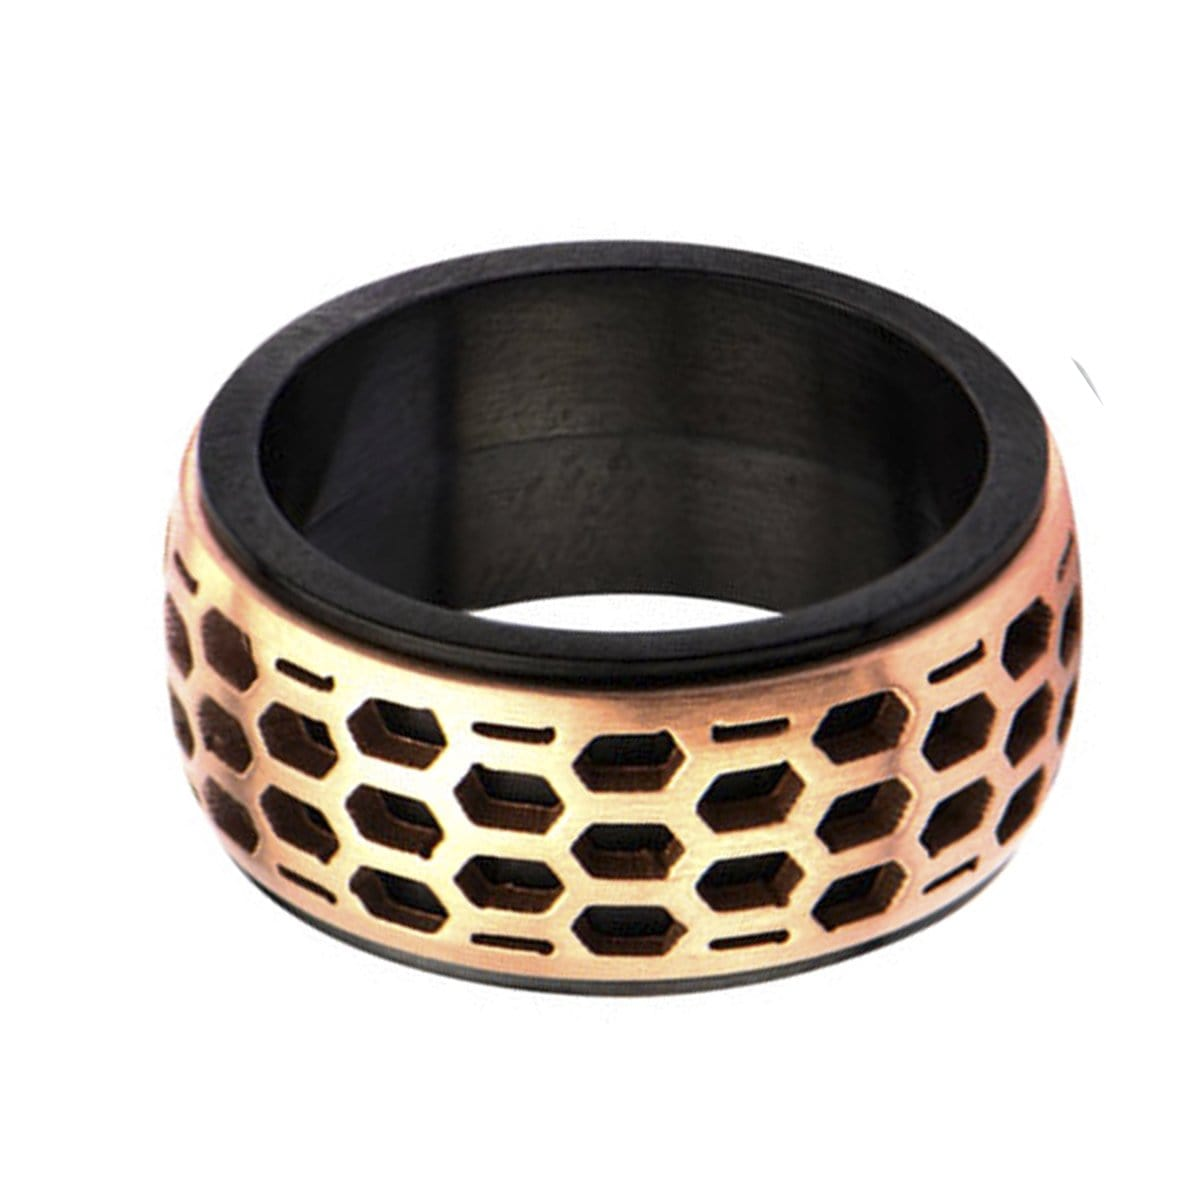 Rose Gold & Black Stainless Steel Car Grille Polished Band Ring